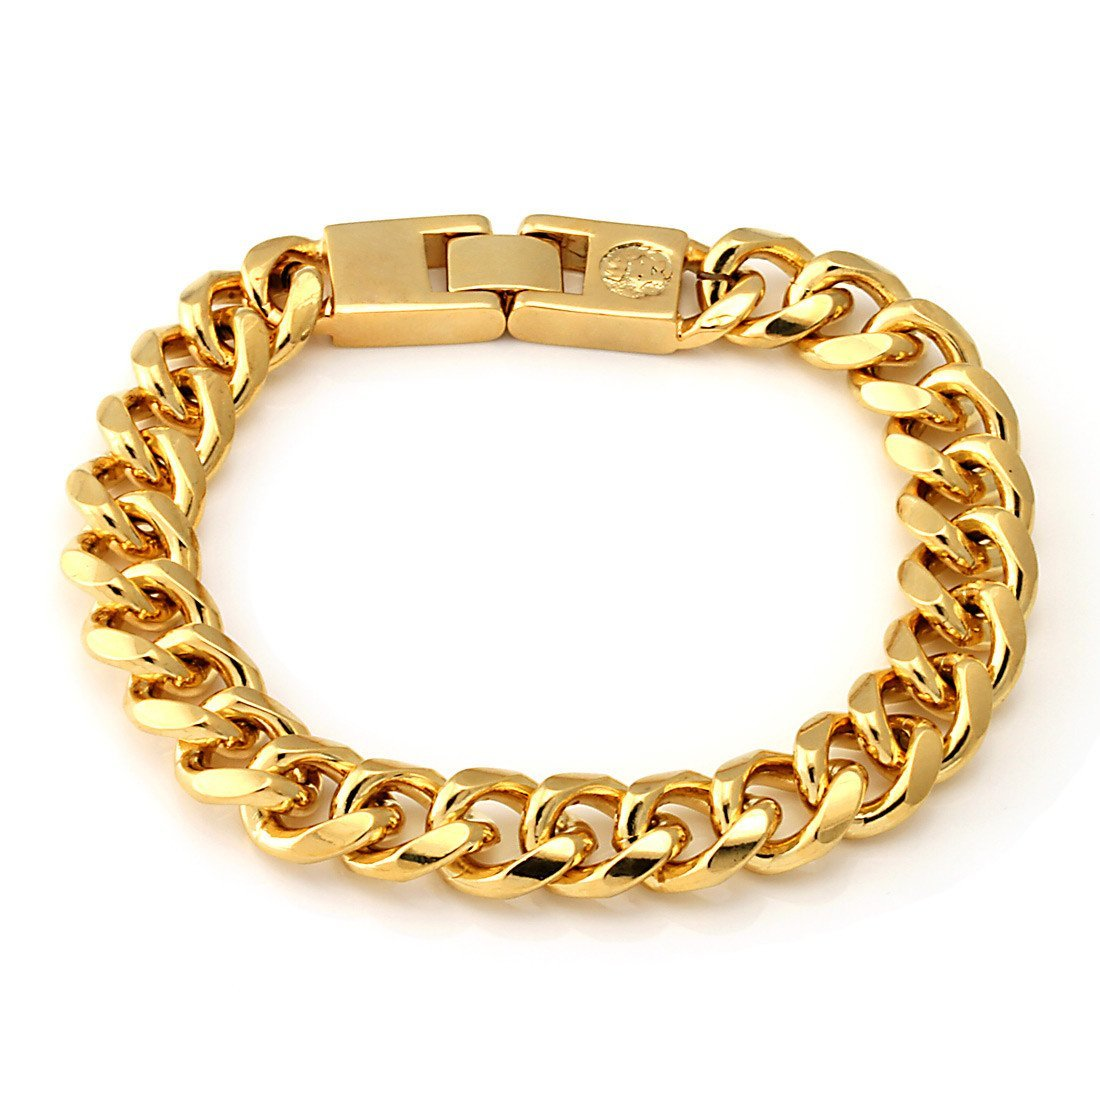 Bracelets - 12mm King Ice 14K Gold Miami Cuban Chain Bracelet -   jetcube